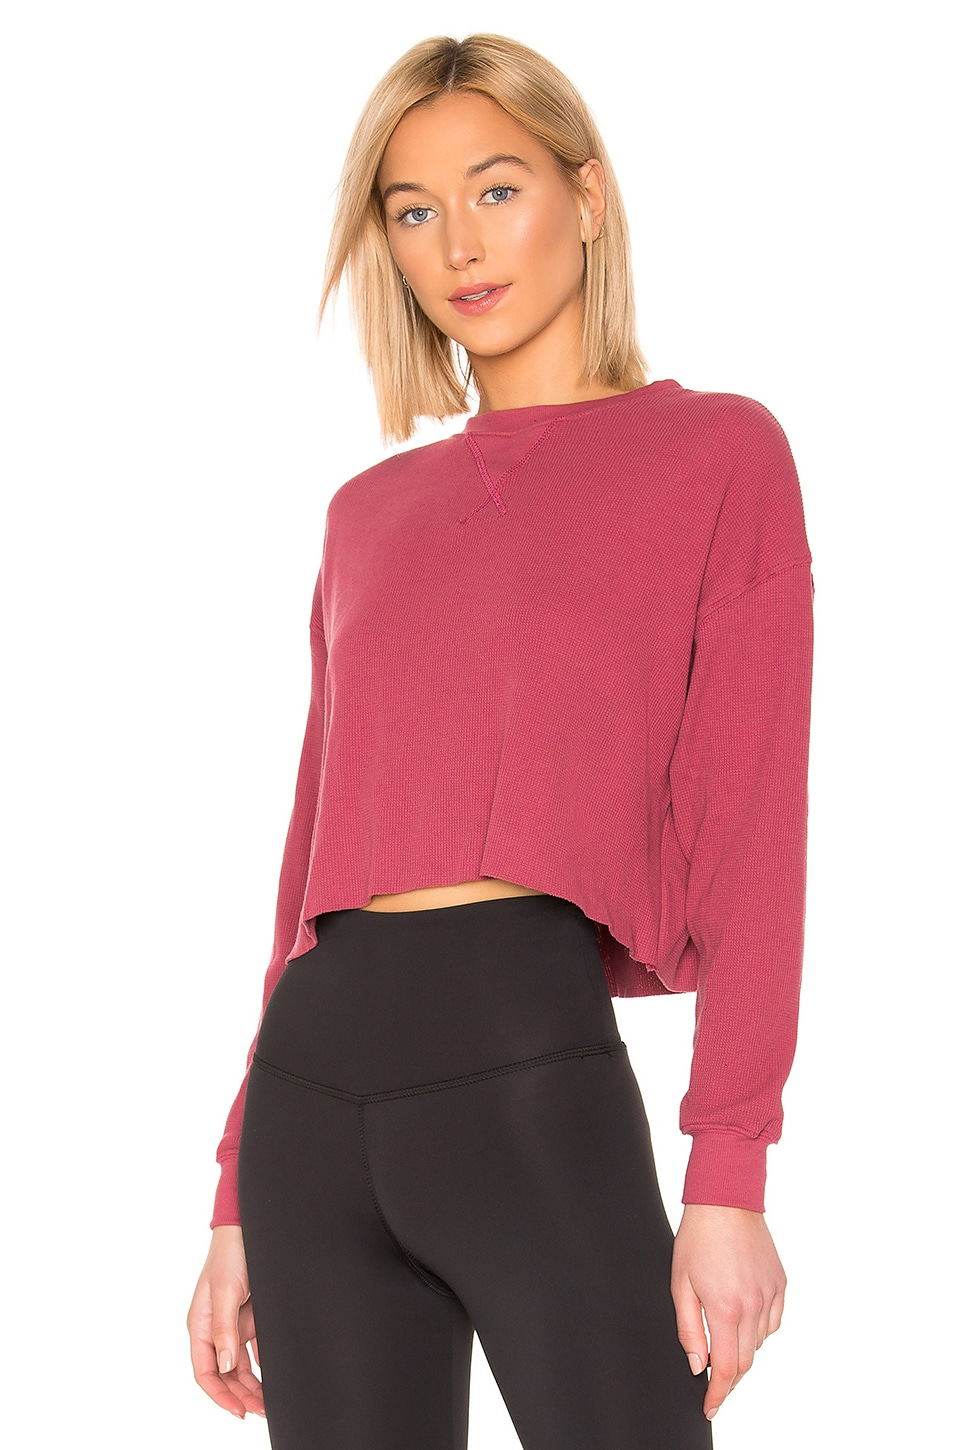 STRUT THIS Axel Thermal in Rose